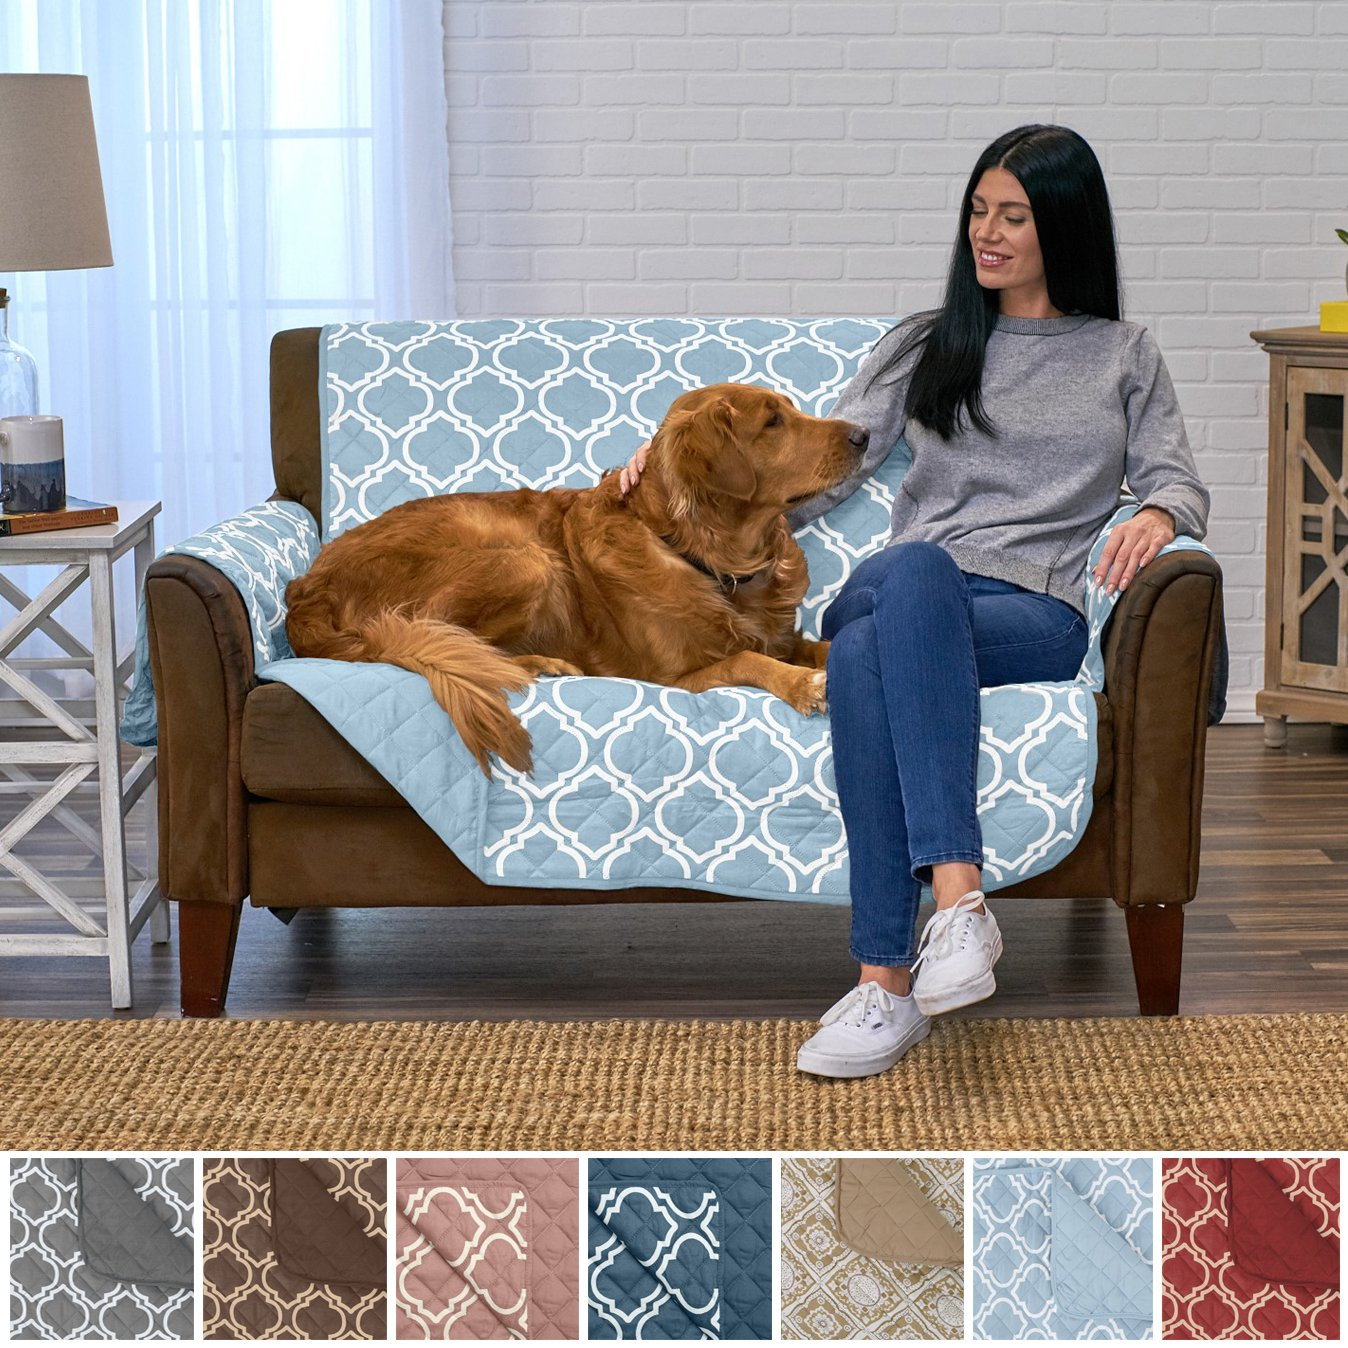 Home Fashion Designs Adalyn Collection Deluxe Reversible Quilted Furniture Protector. Beautiful Print on One Side/Solid Color on the Other for Two Fresh Looks. By Brand. (Loveseat, Marine Blue)